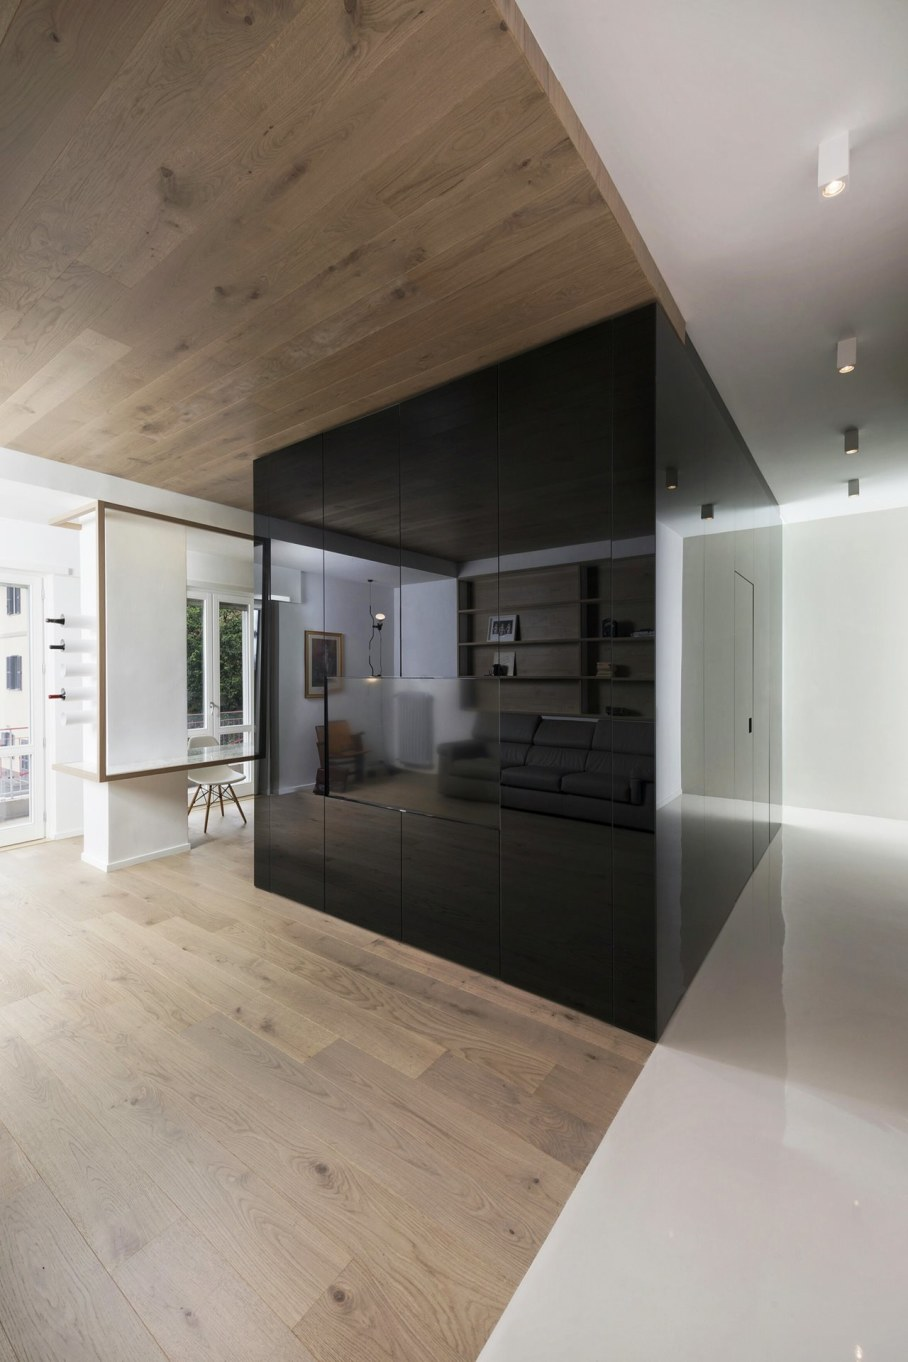 Cube House by Noses Architects studio 2